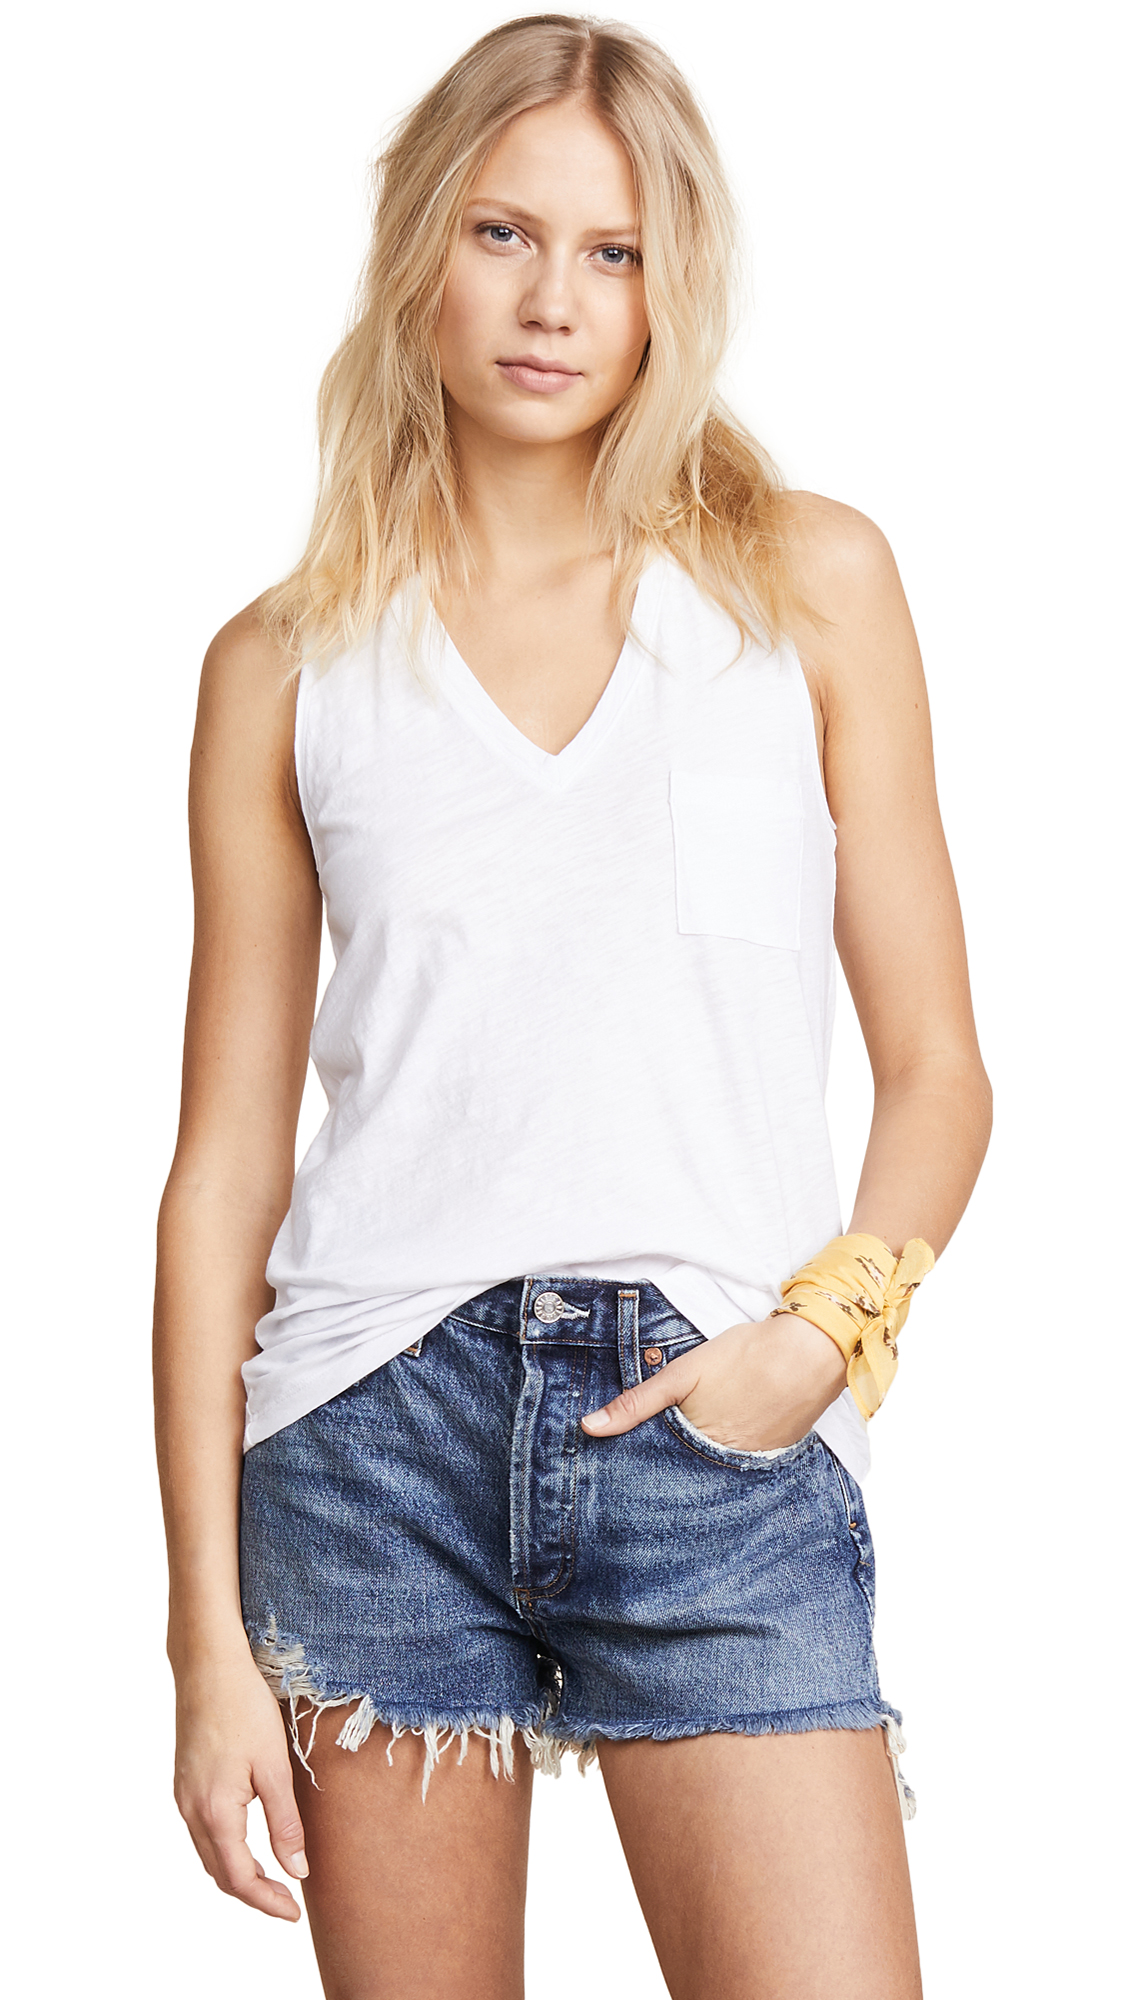 e673d8e95d4ee Madewell Whisper Cotton V Neck Pocket Tank